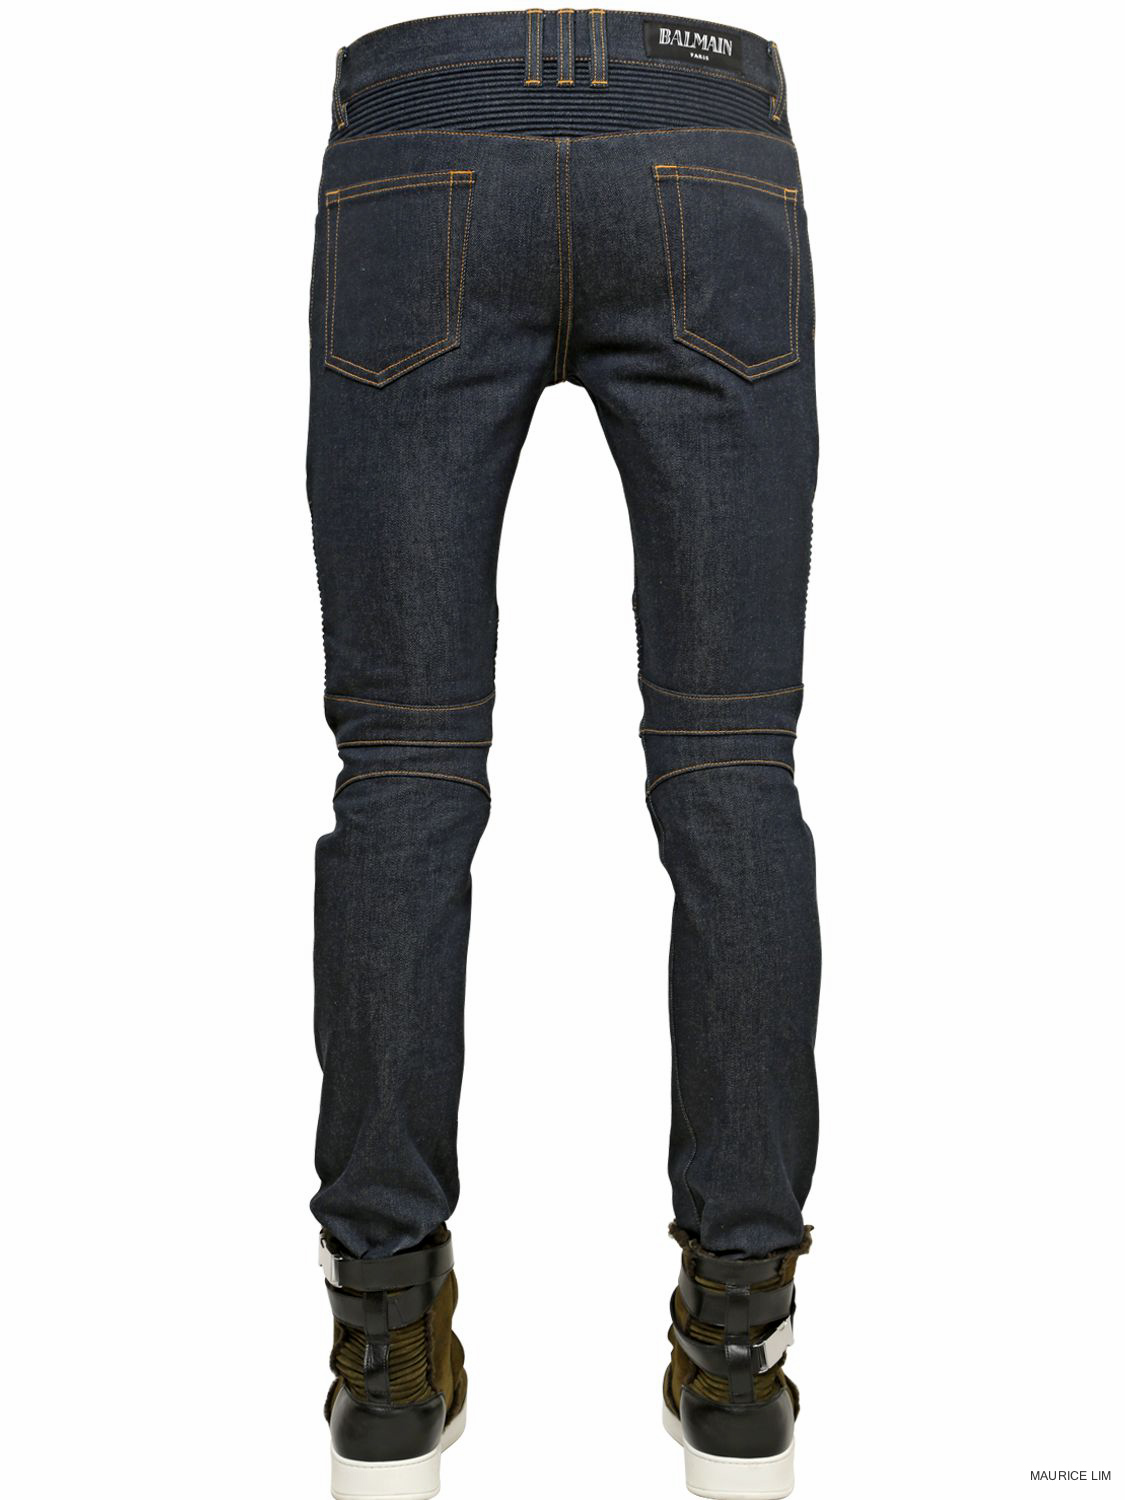 Find great deals on eBay for balmain biker jeans. Shop with confidence.